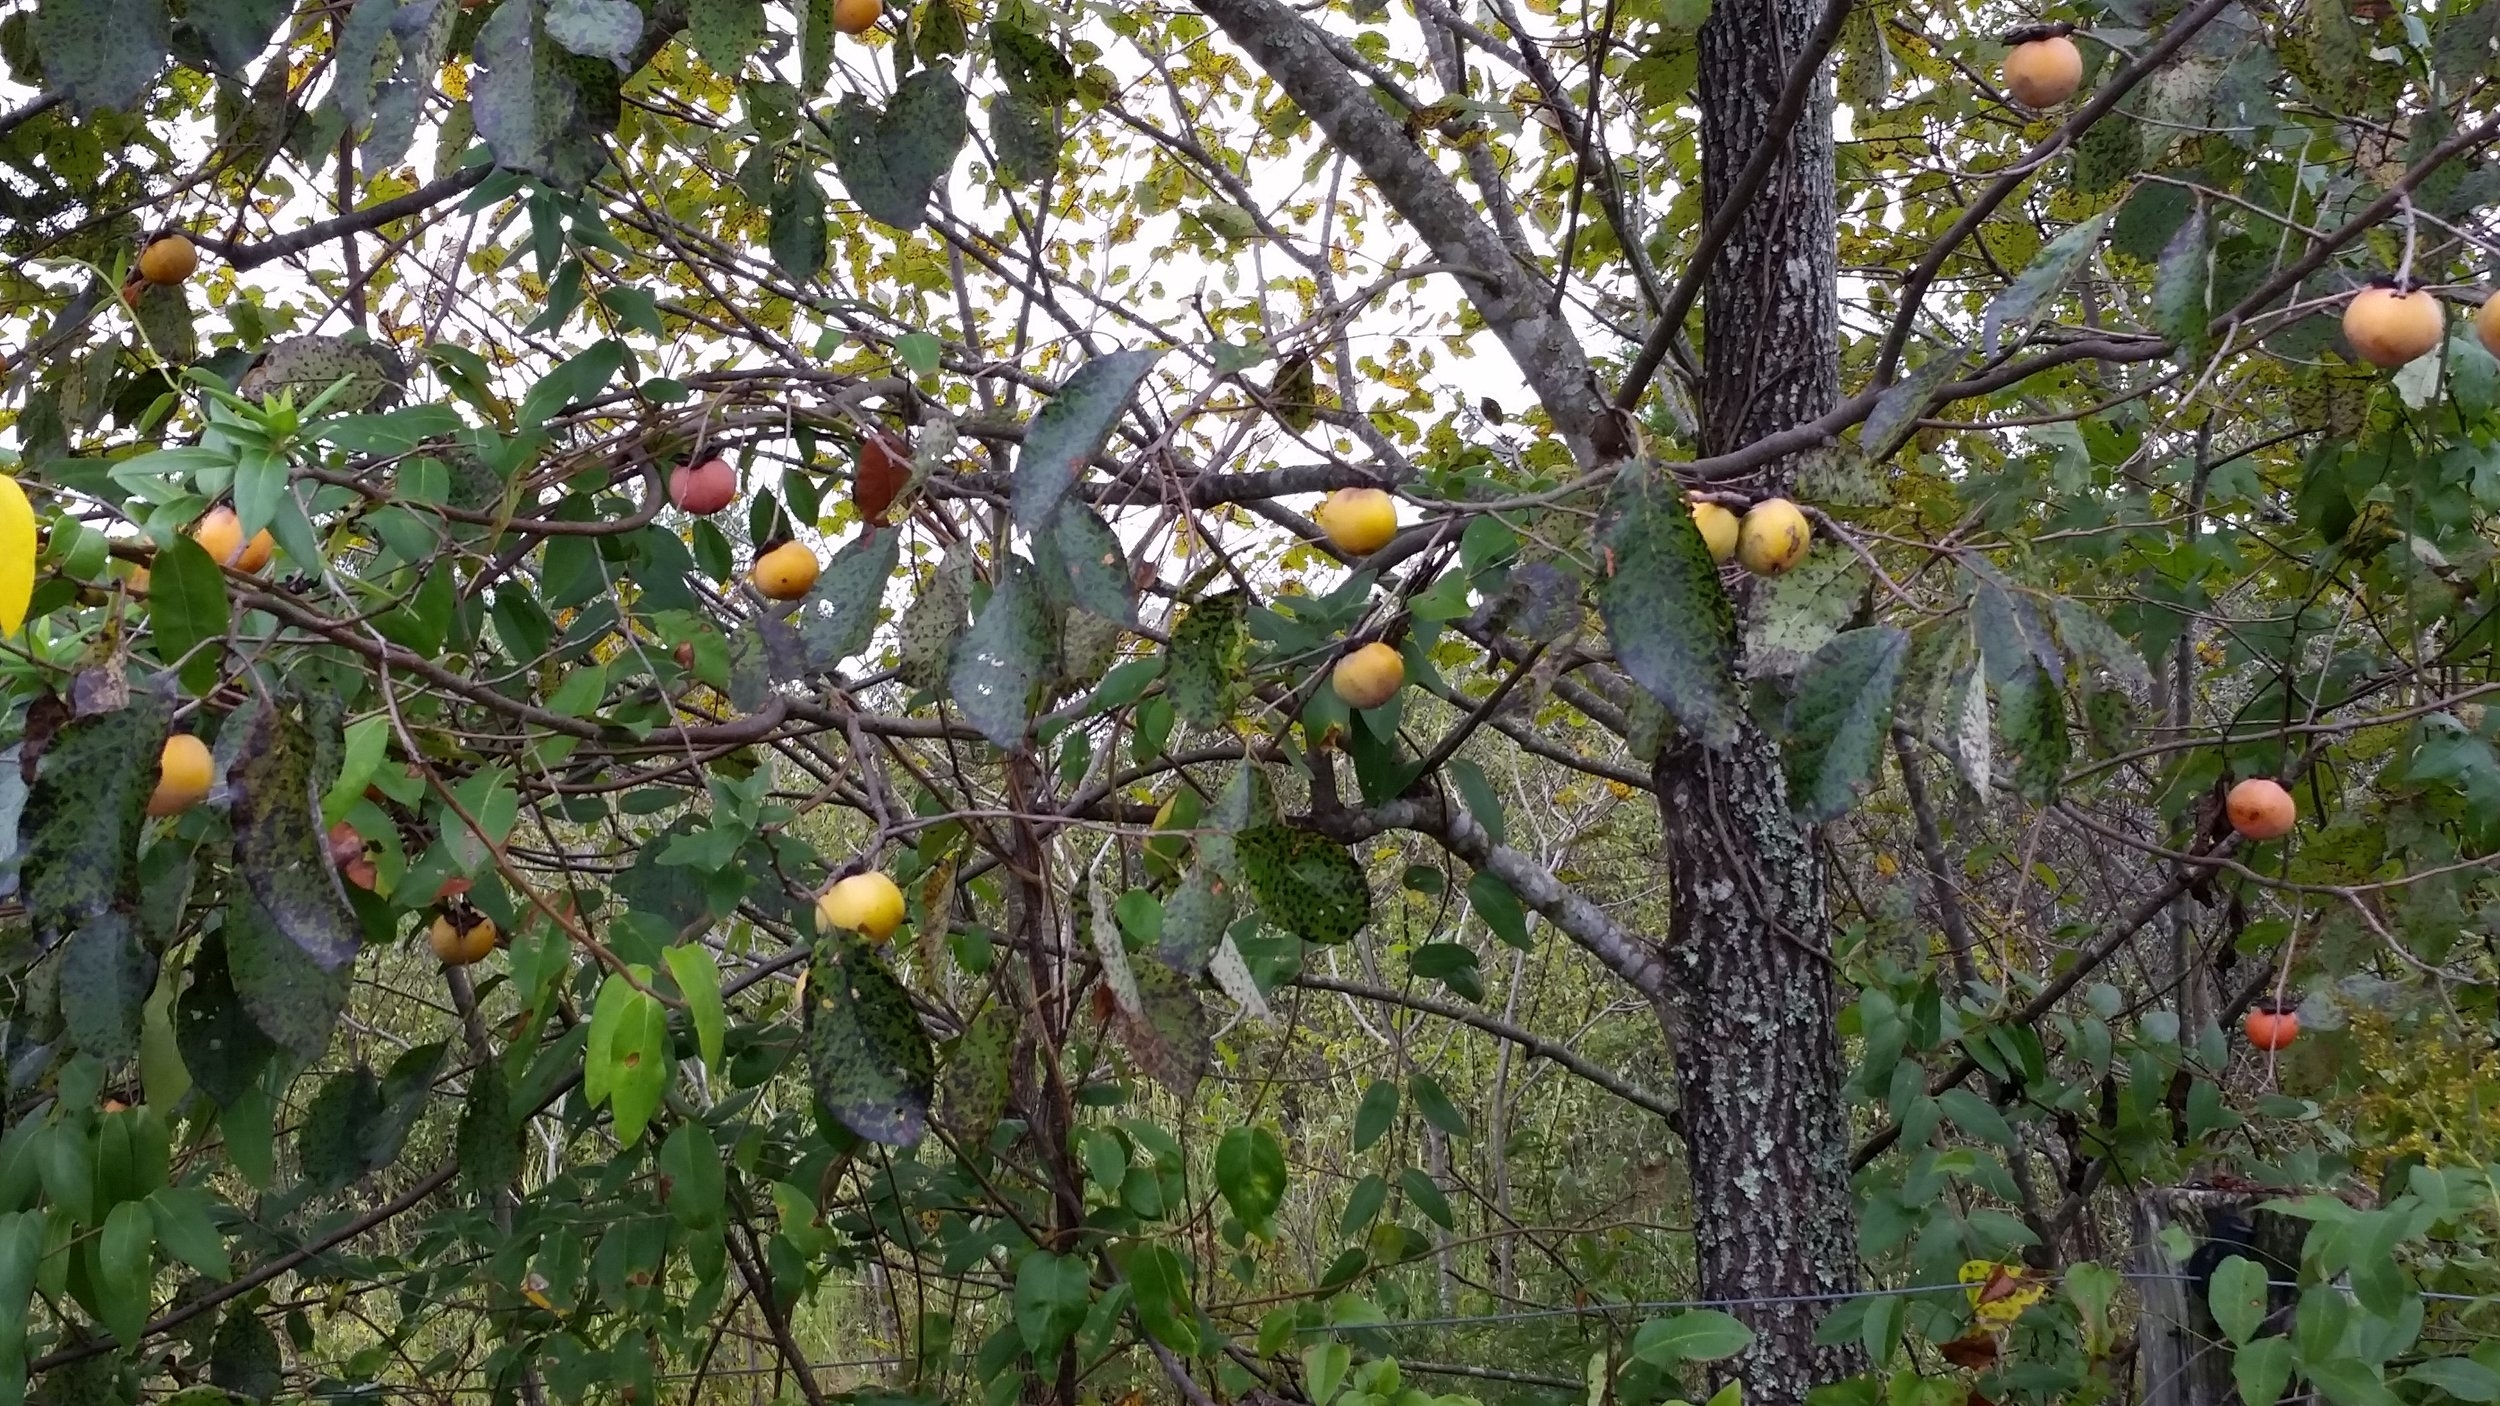 Native persimmon,  Diospyros virginiana . Also known as Possum Apples, since opossums love to eat the fallen fruit.